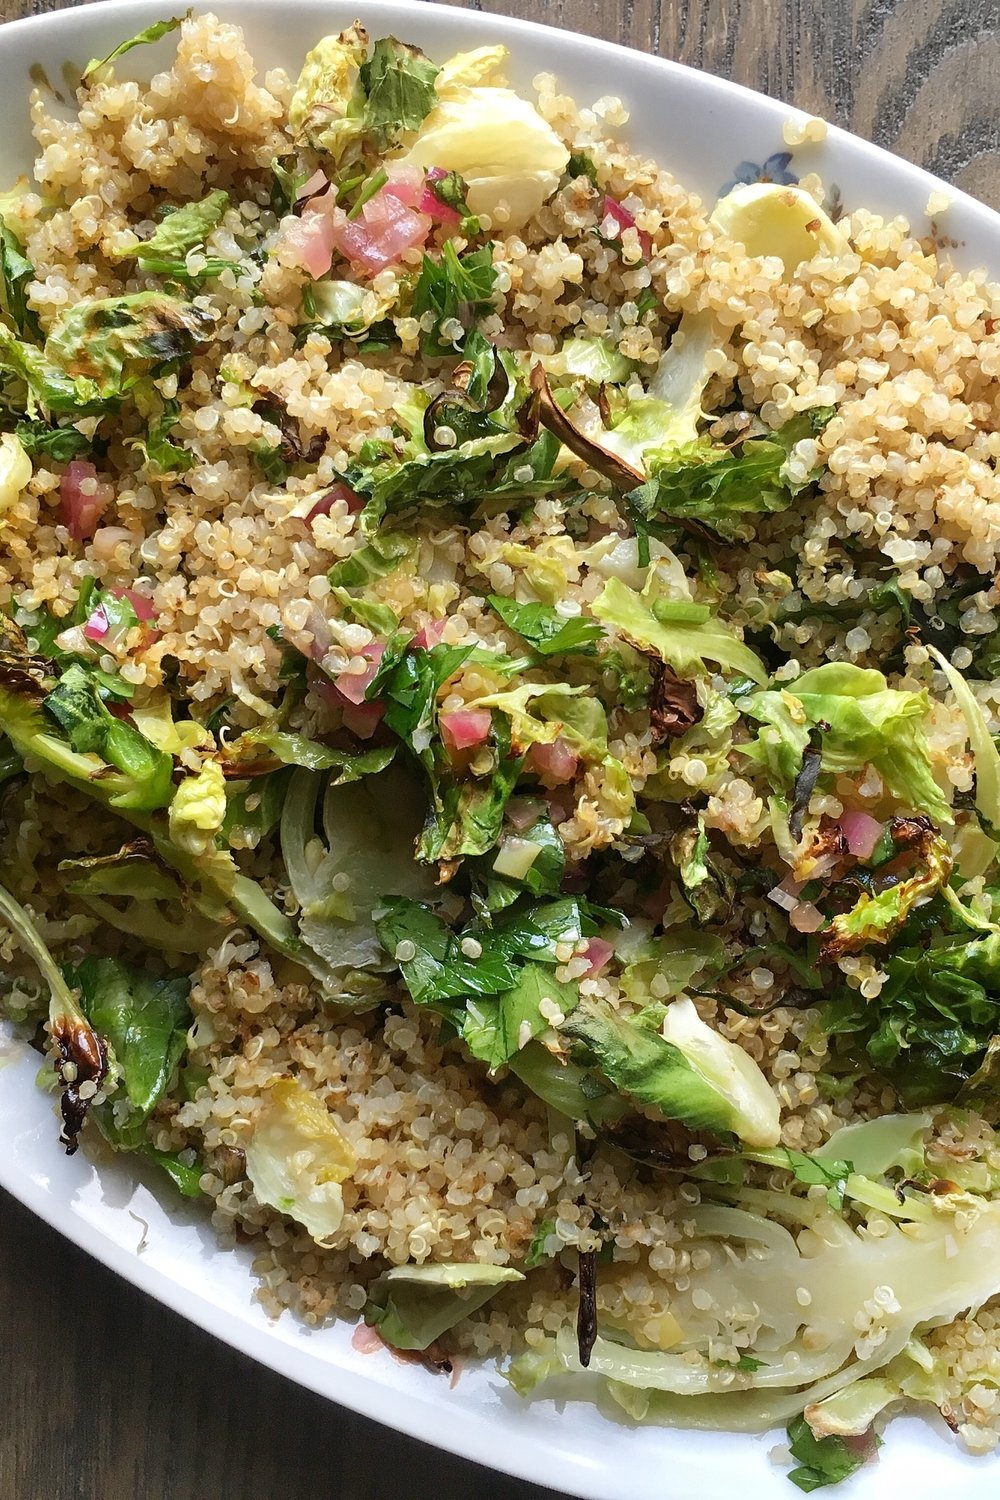 Roasted Brussel Sprouts And Quinoa With Red Onion Vinaigrette by Judy Kim